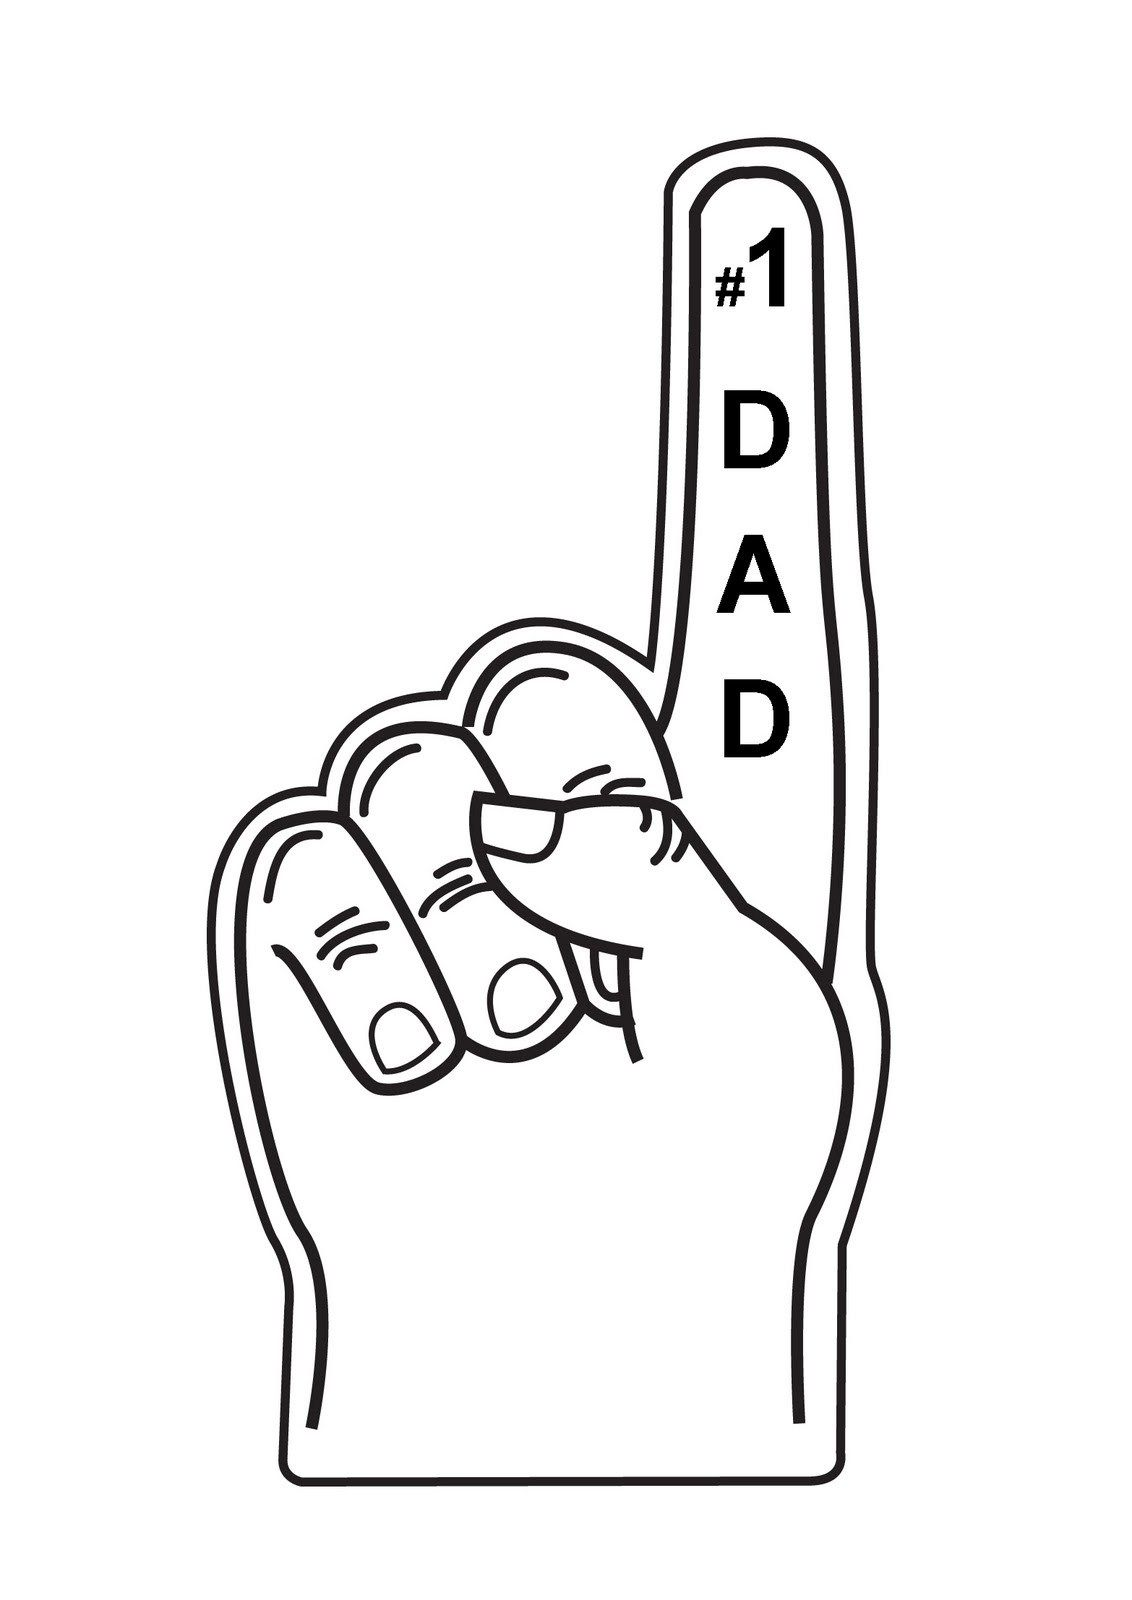 Summer crafts coloring pages - Valentine Cards Kids Can Make Coloring Pages Created This Faux Foam Finger In Illustator To